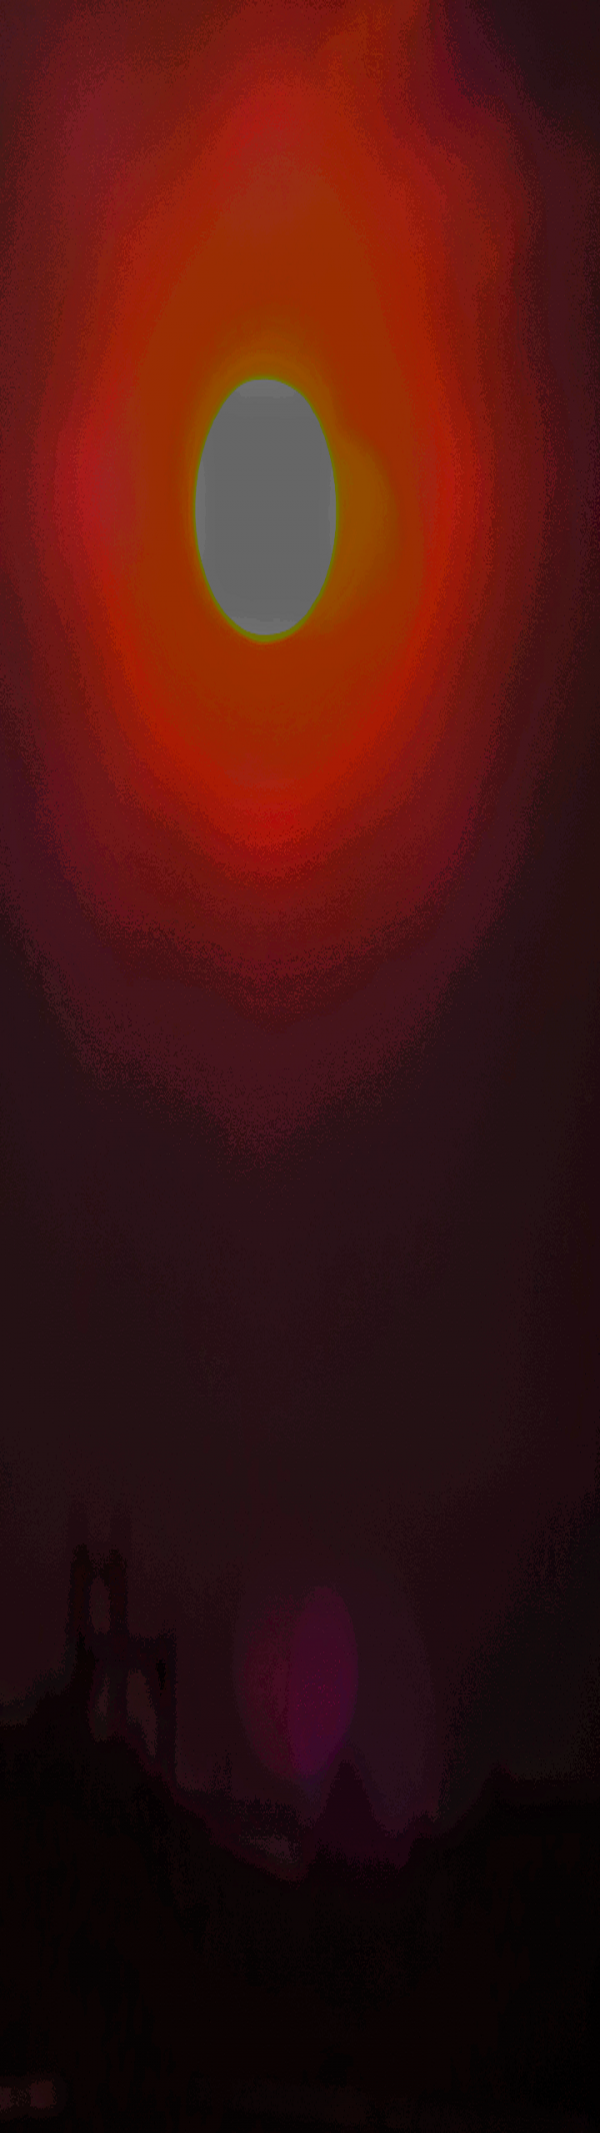 2016-10-12 08.01.05555.png